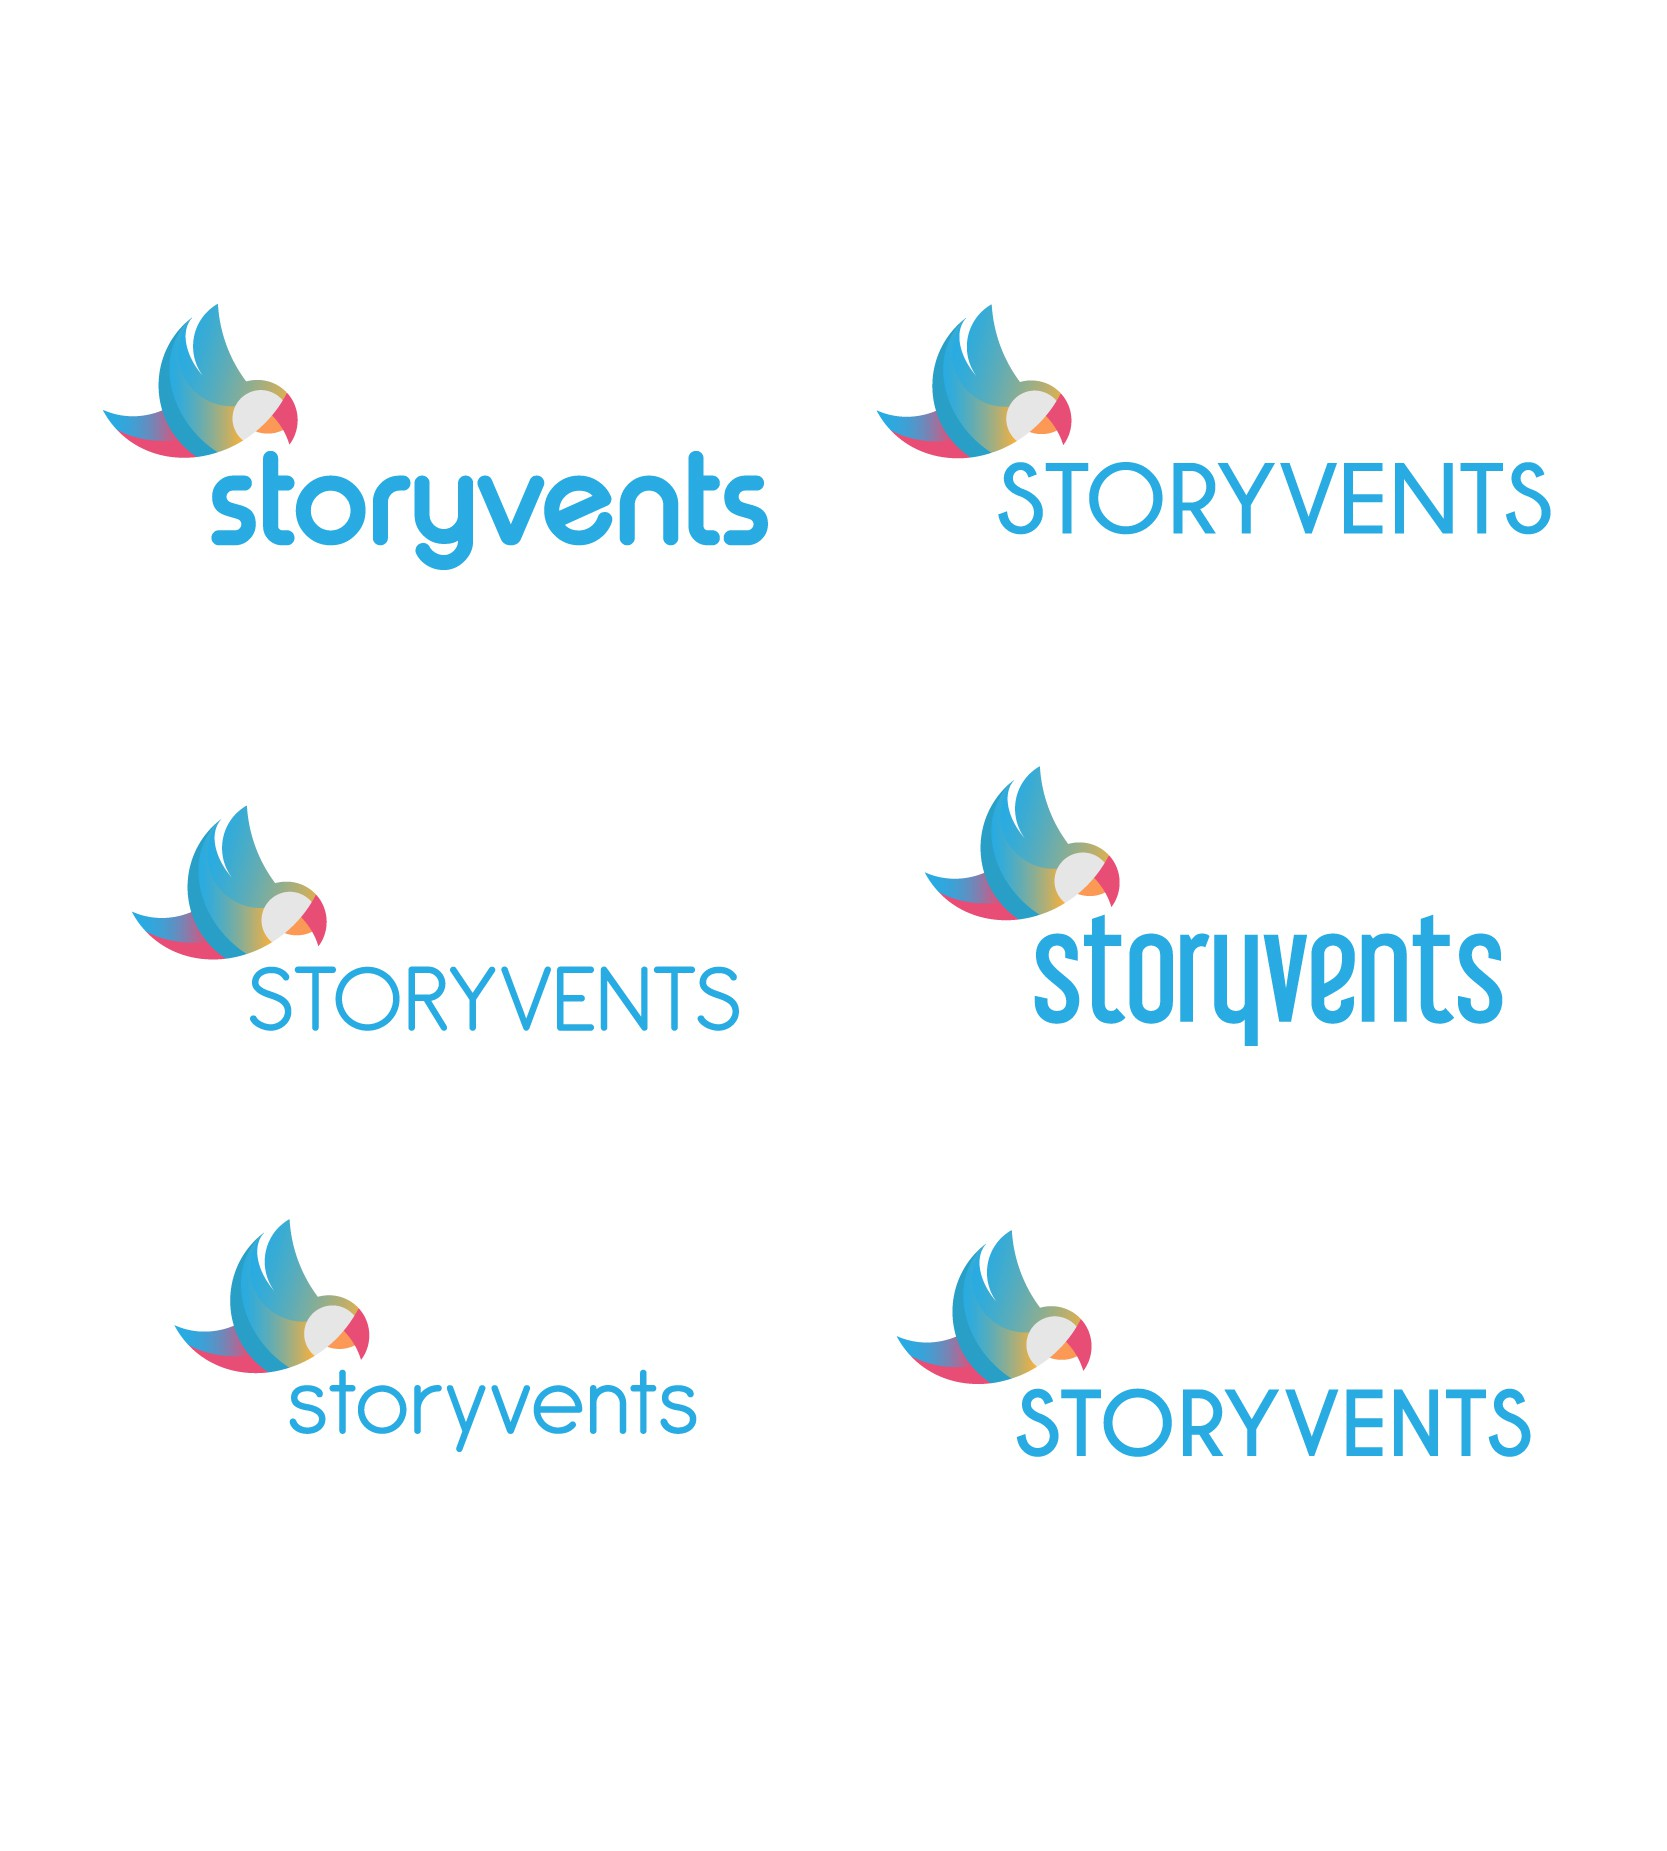 Create an epic logo for a company that is at the intersection of publishing and events!